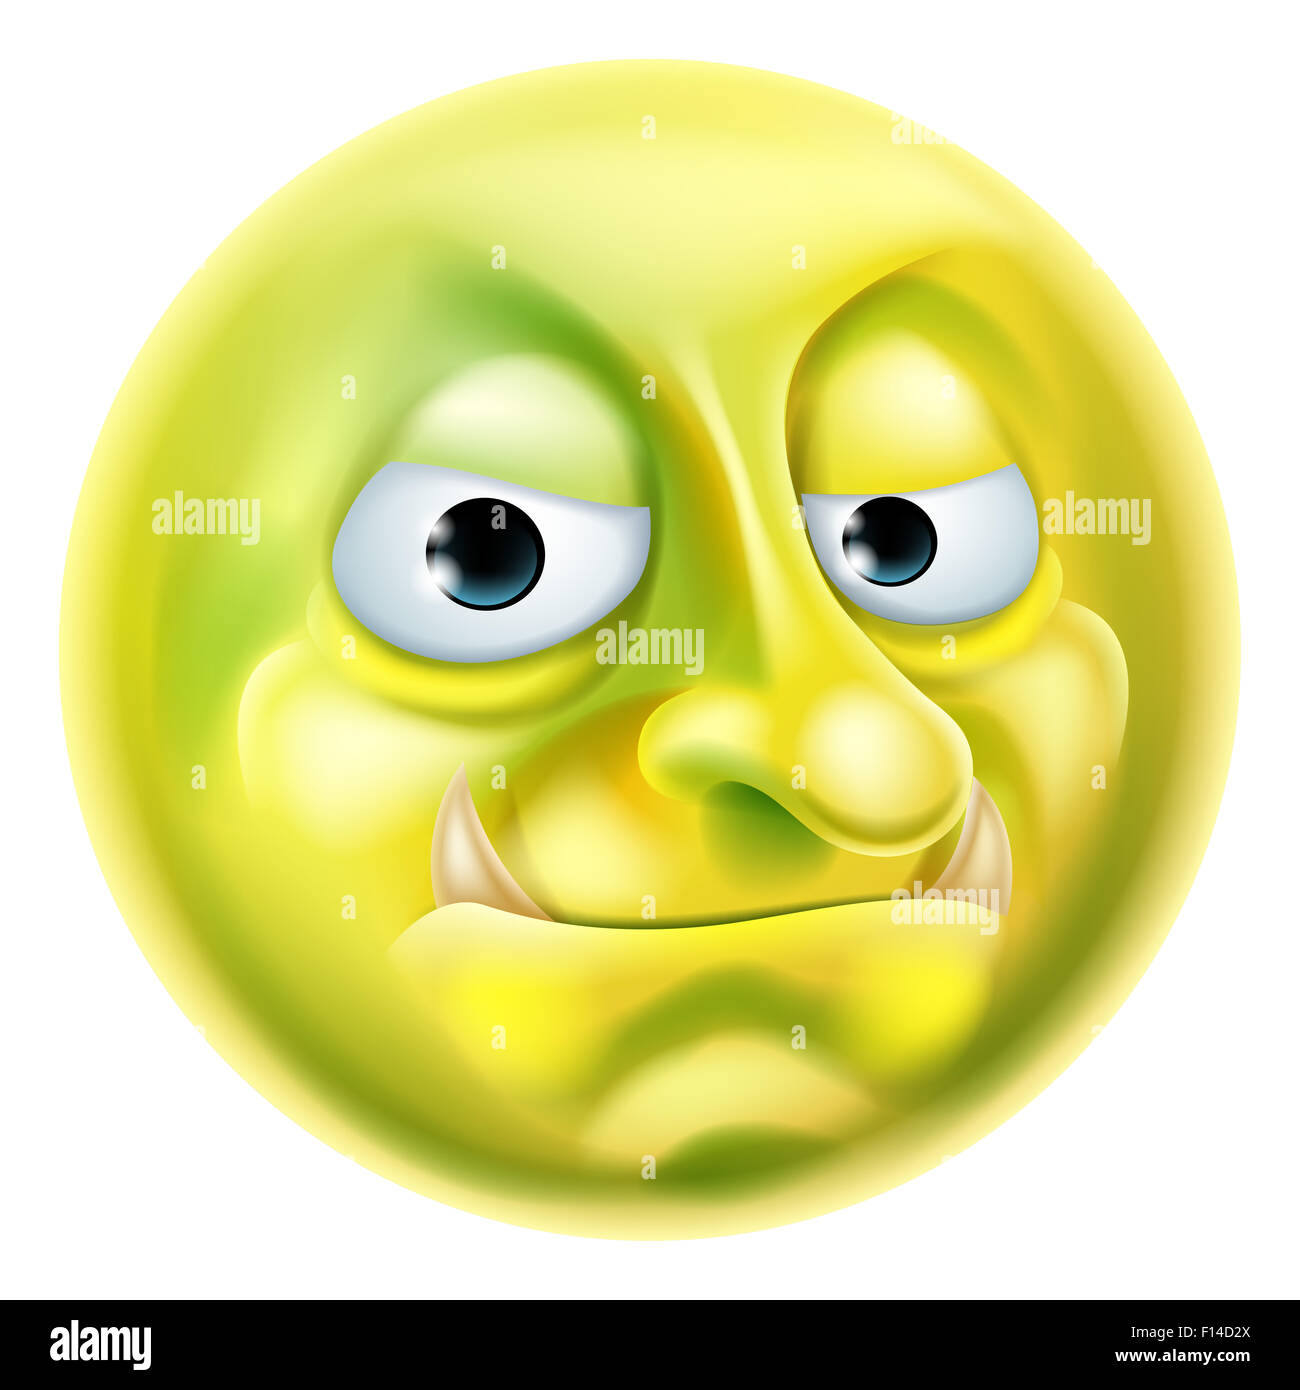 Love Is A Lie Meme Clipart Emoji Love Smiley Crying Troll Face